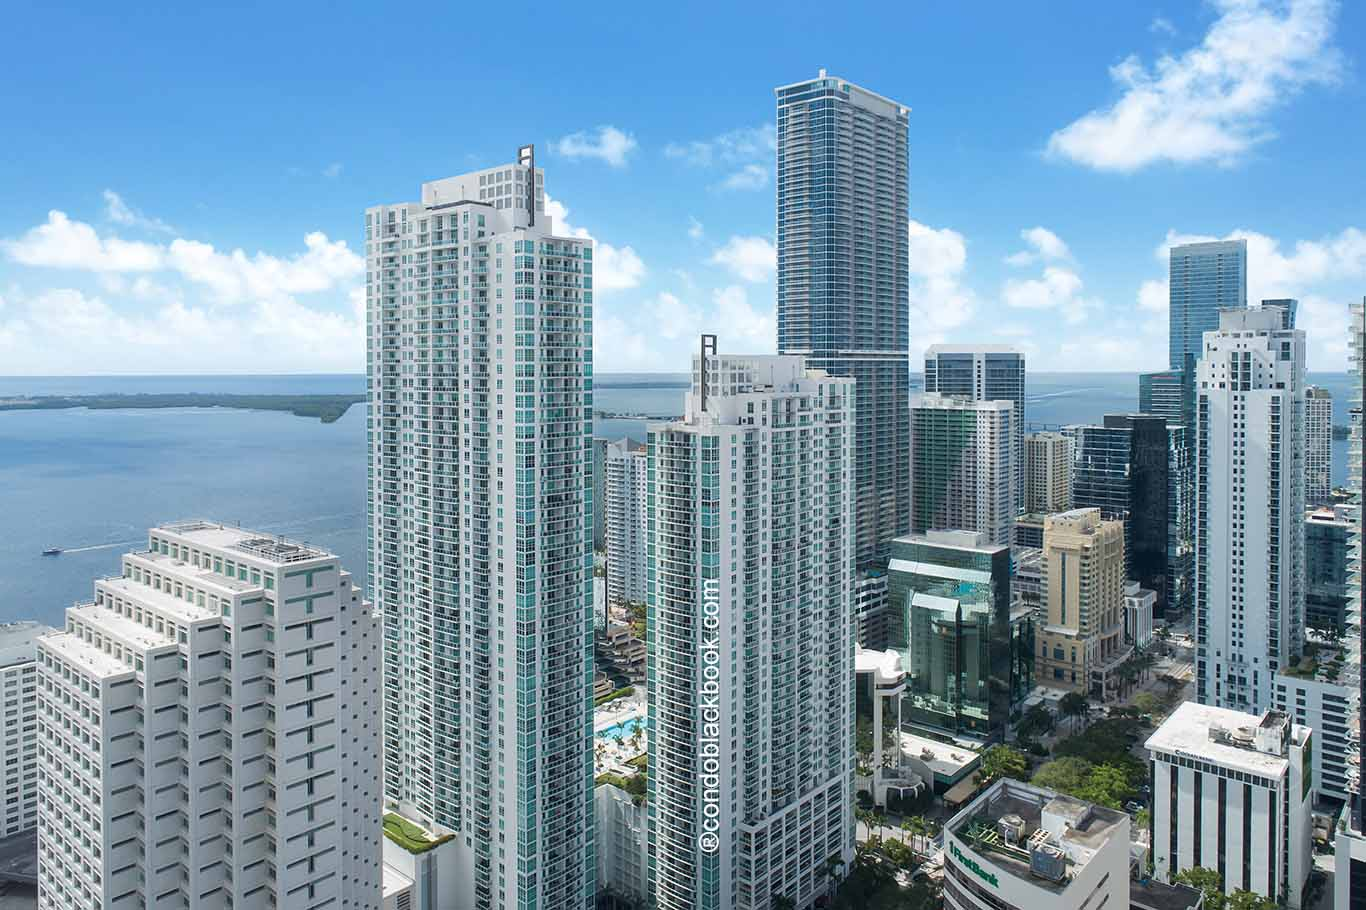 The Plaza on Brickell South Img1